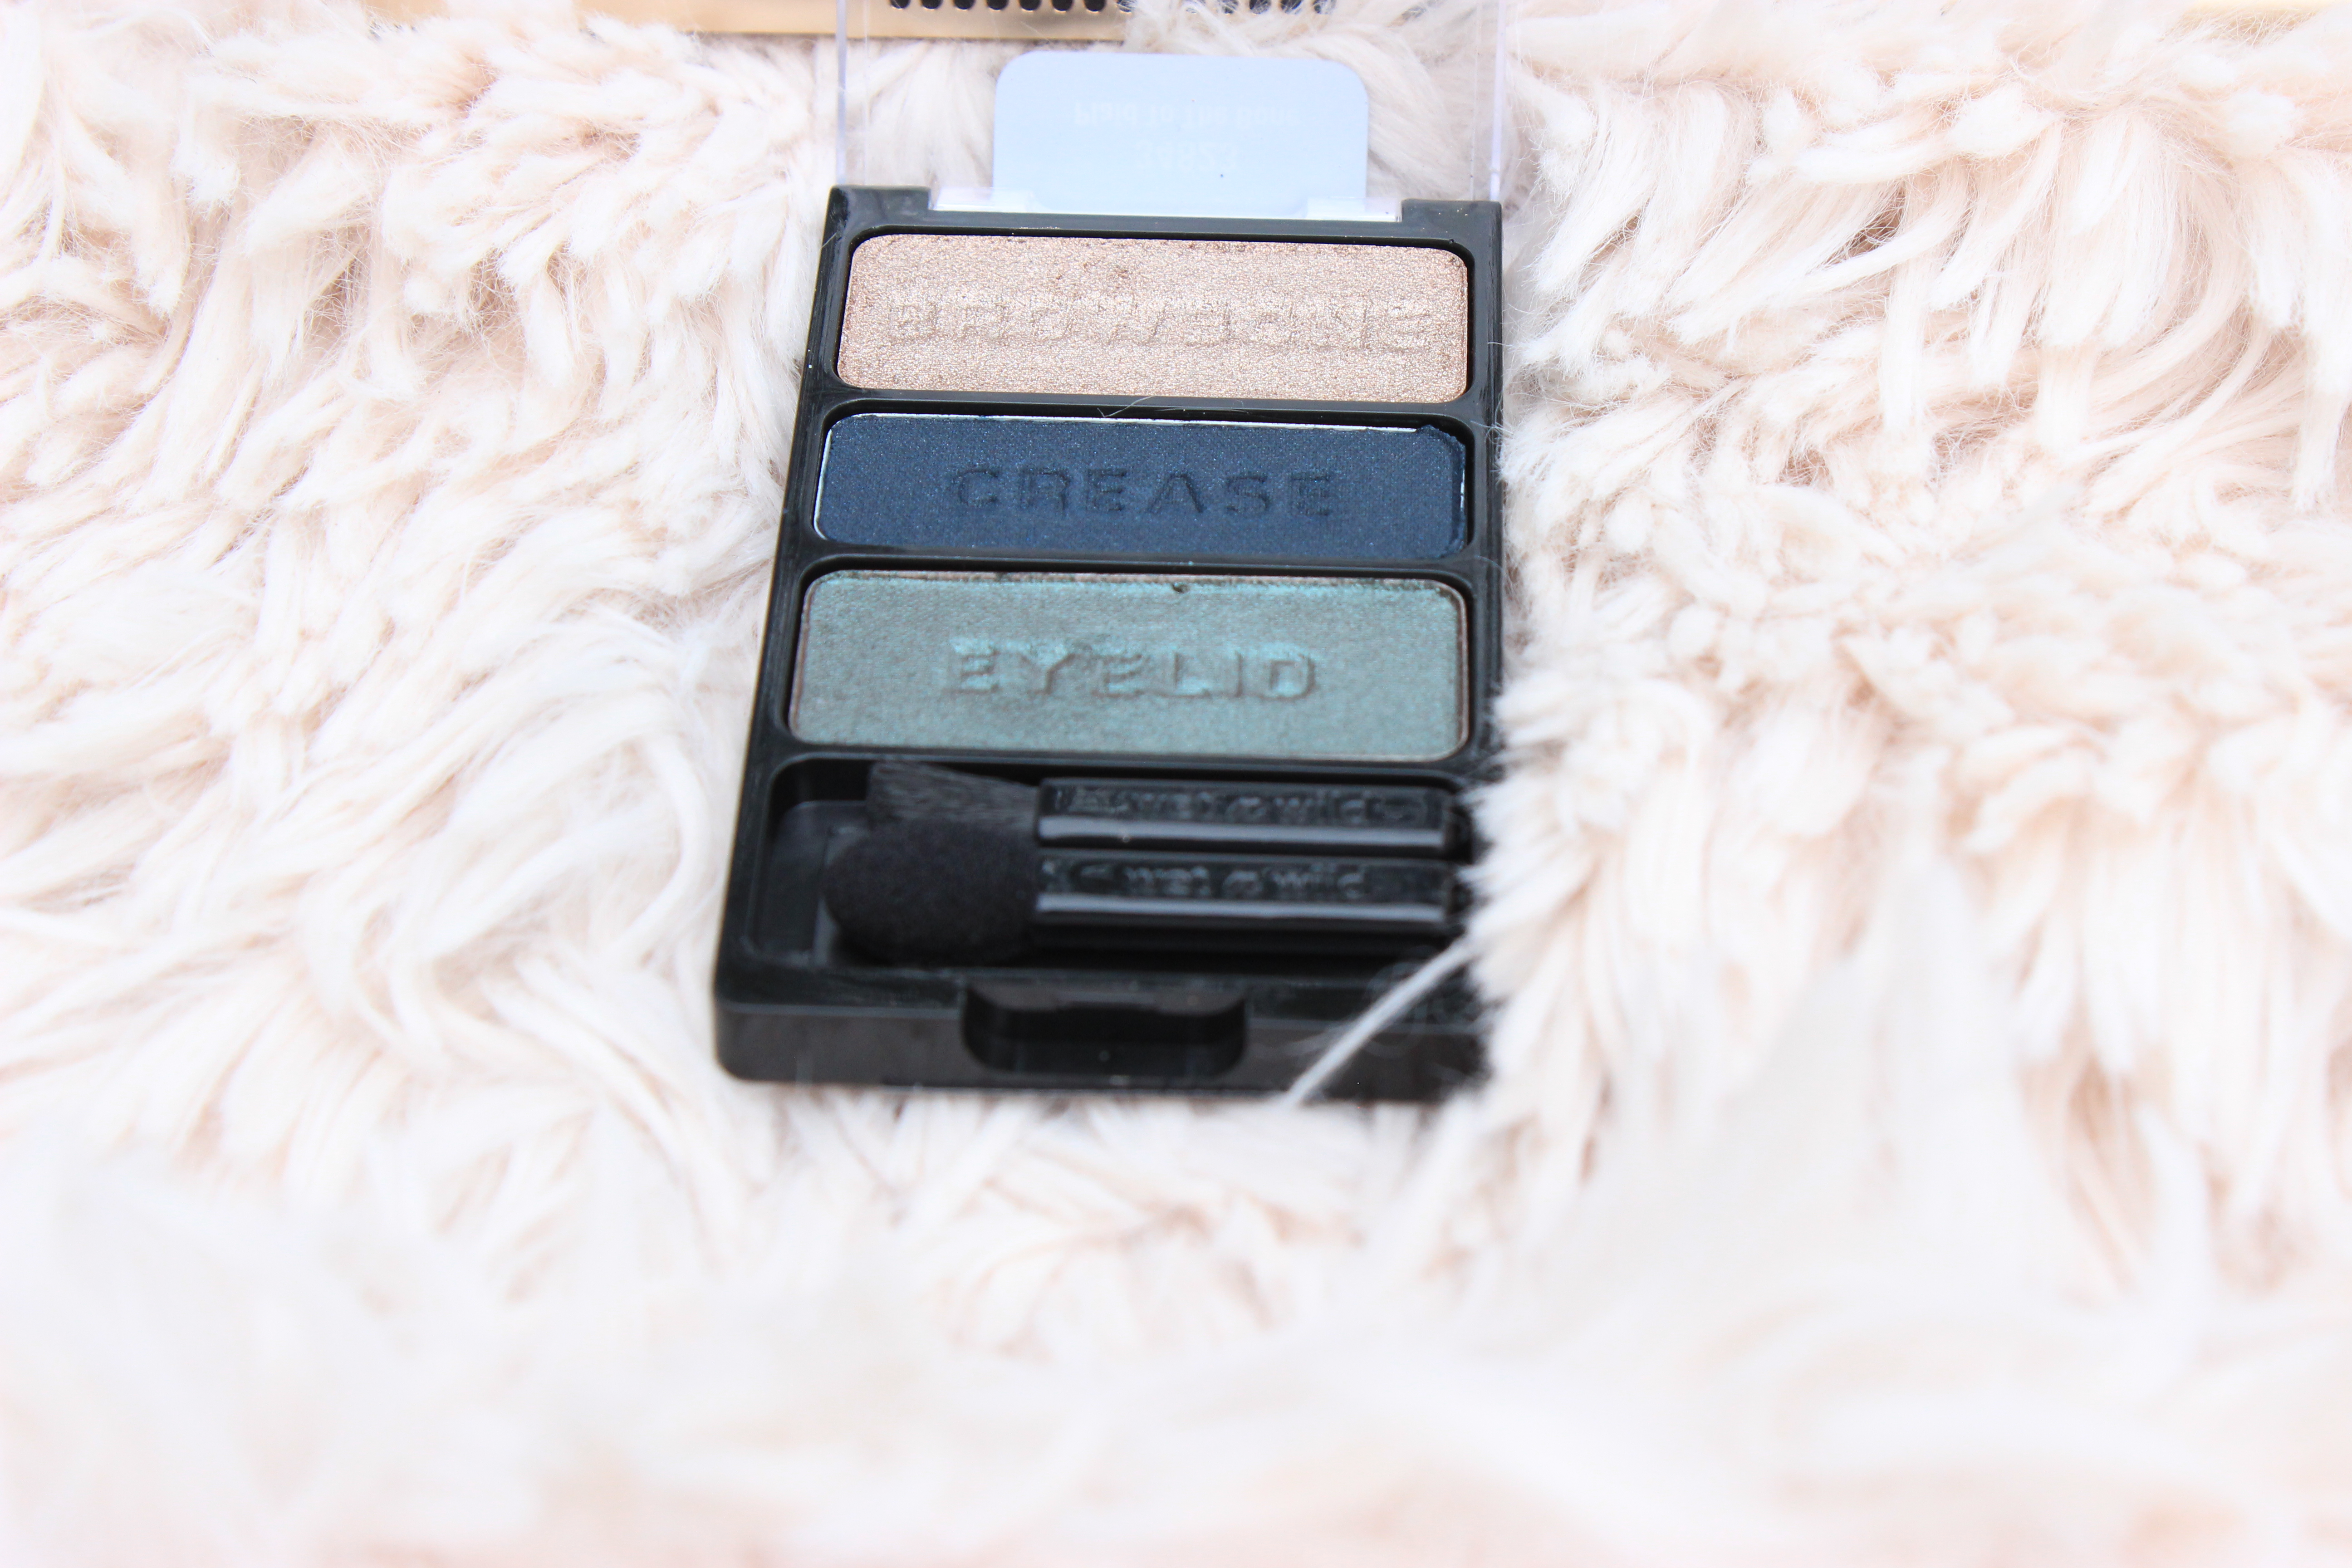 WetnWild-eyeshadow-palette- wrappers-delight- swatches- WetnWild-eyeshadow-palette-plaid-to-the-bone-eyeshadow-makeup-review- WetnWild-eyeshadow-palette-bust-a-wrap-review-oohlalablog-10